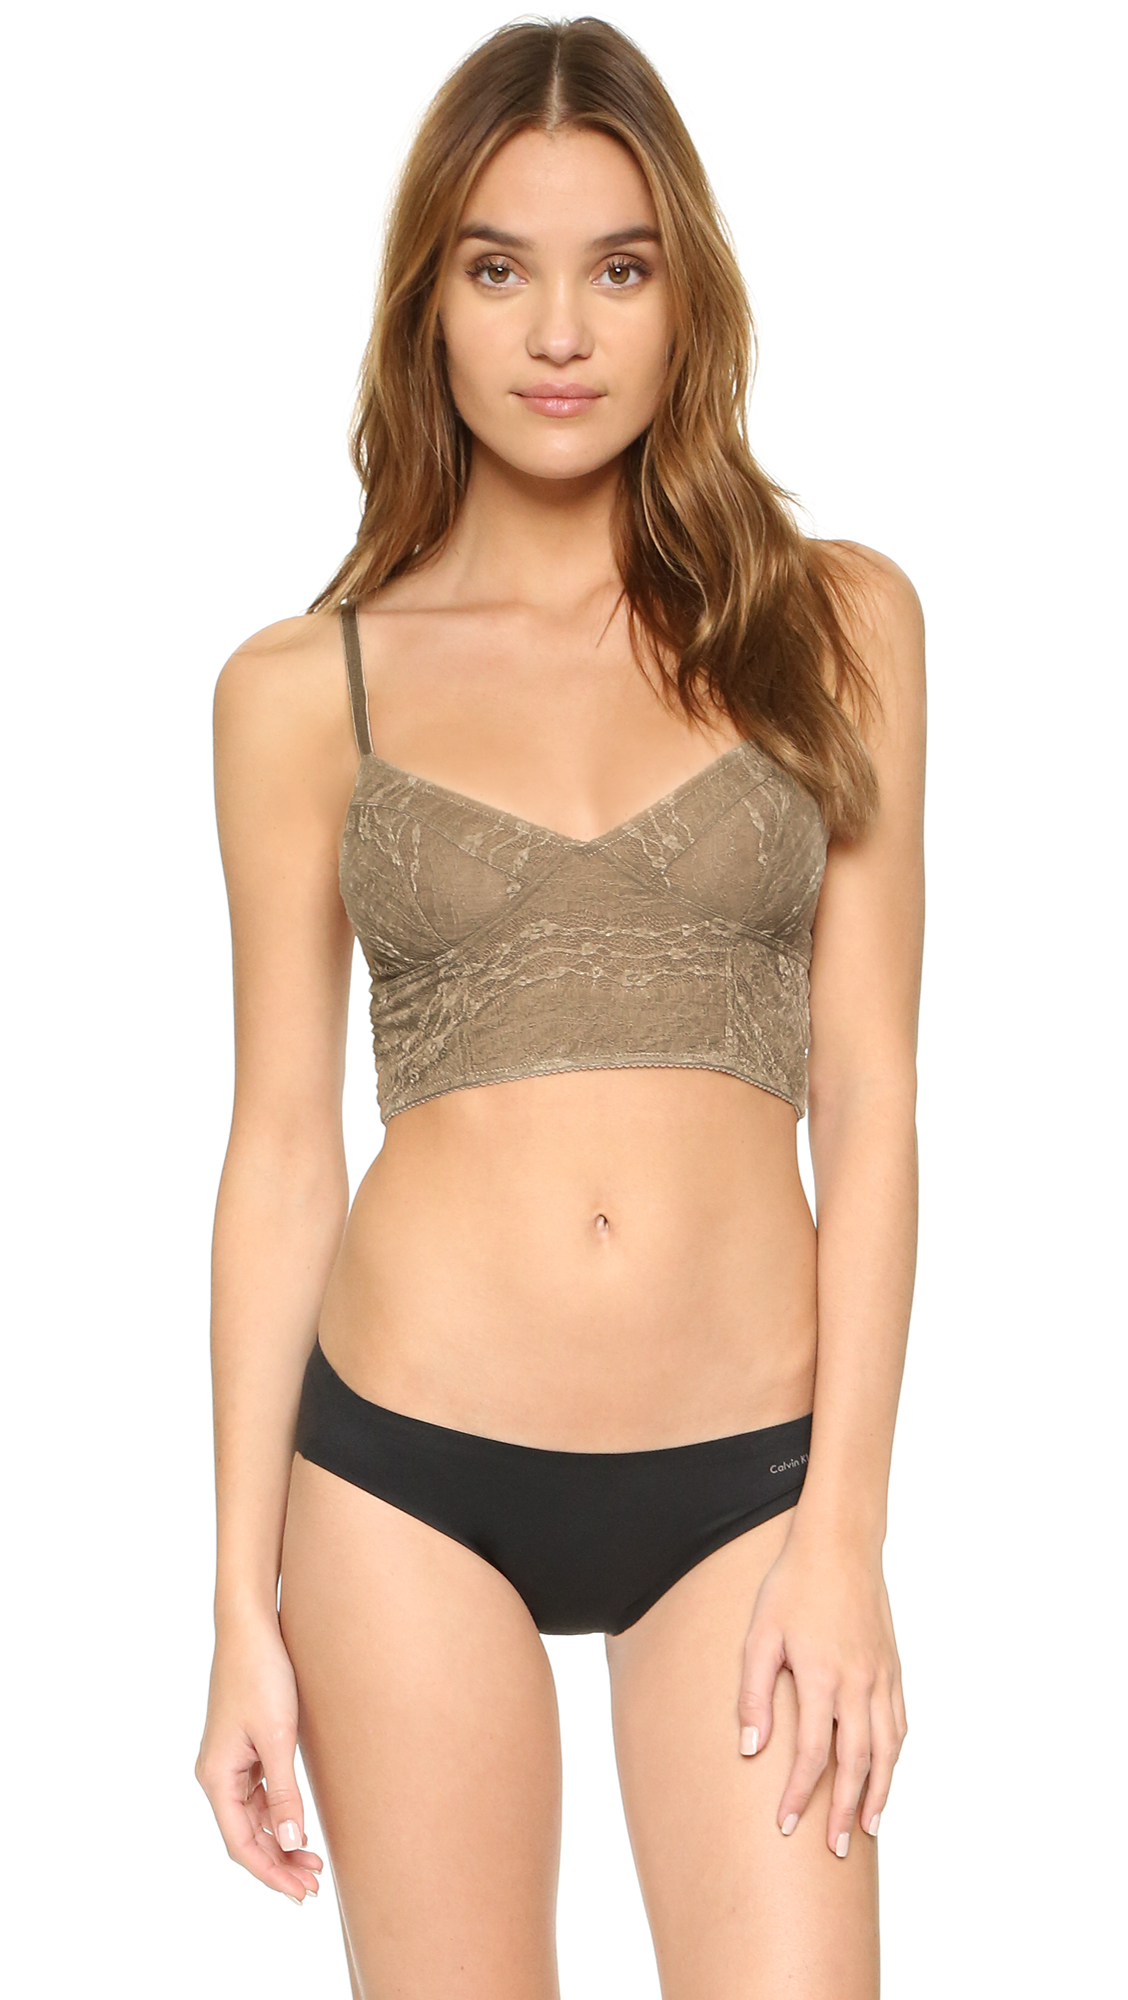 aaa79083c59 Free People Stretch Lace Crop Bra